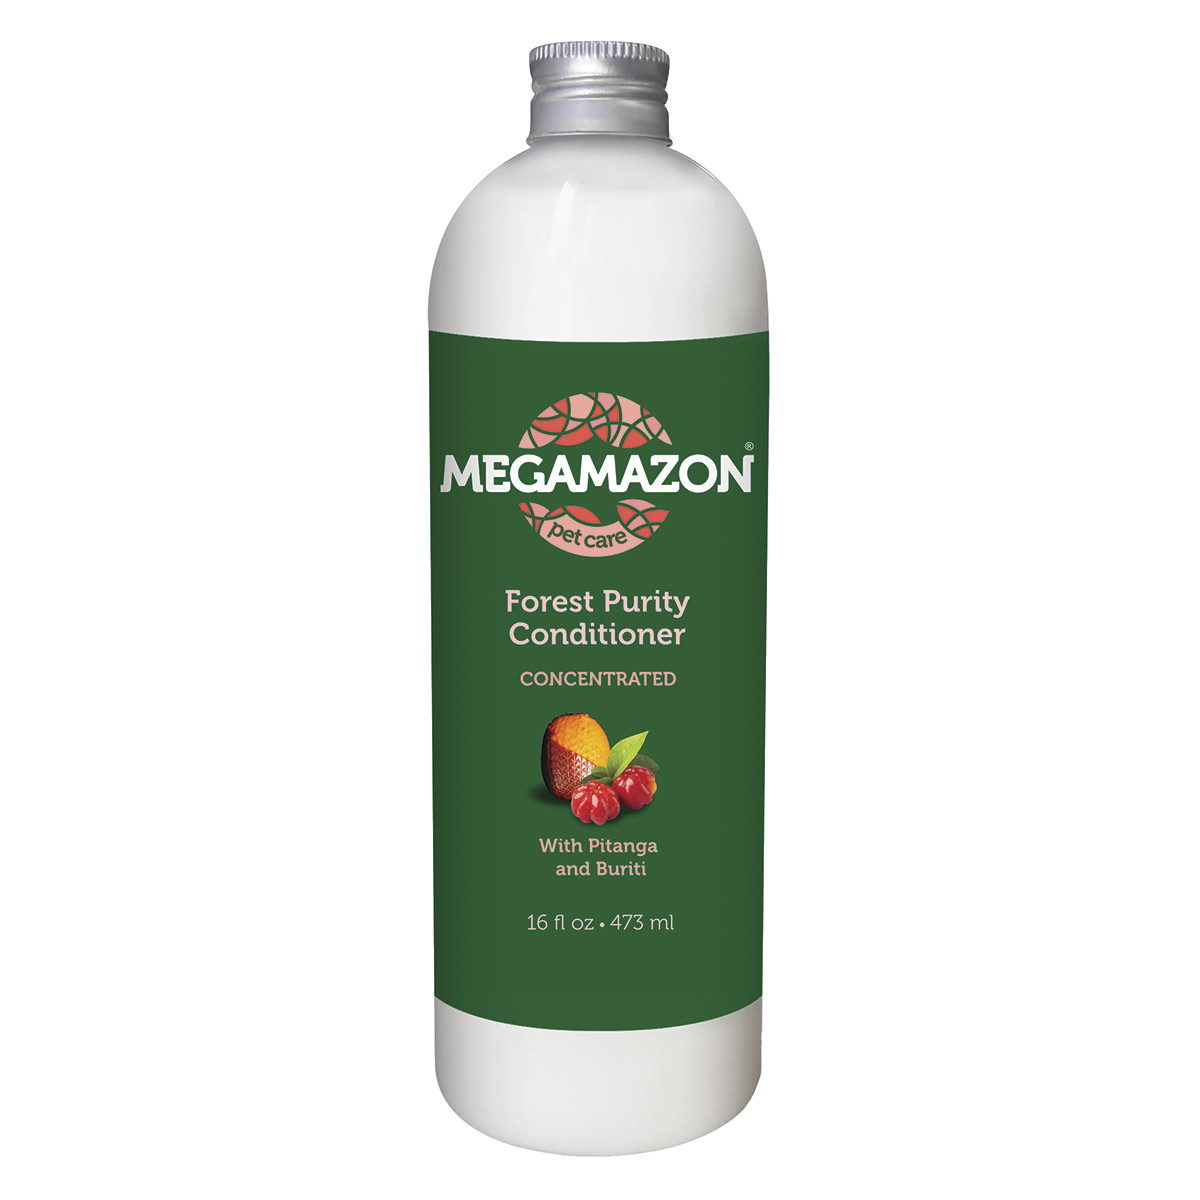 Buy Megamazon Forest Purity Conditioner 16 oz